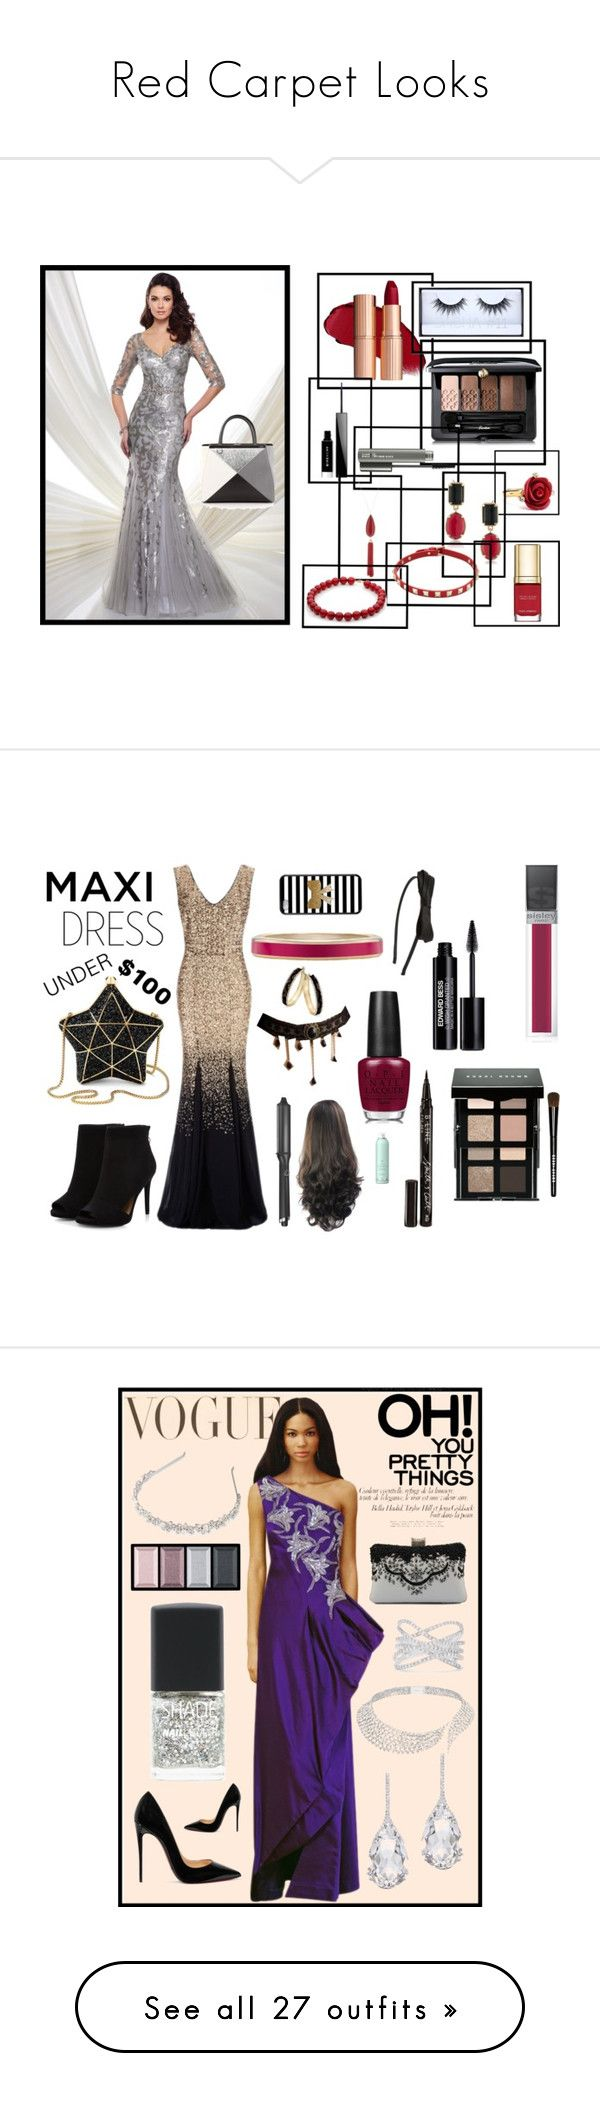 """""""Red Carpet Looks"""" by i-love-tennis ❤ liked on Polyvore featuring Mon Cheri, Fendi, Guerlain, Huda Beauty, Givenchy, MAC Cosmetics, Oscar de la Renta, 1st & Gorgeous by Carolee, New Directions and Valentino"""